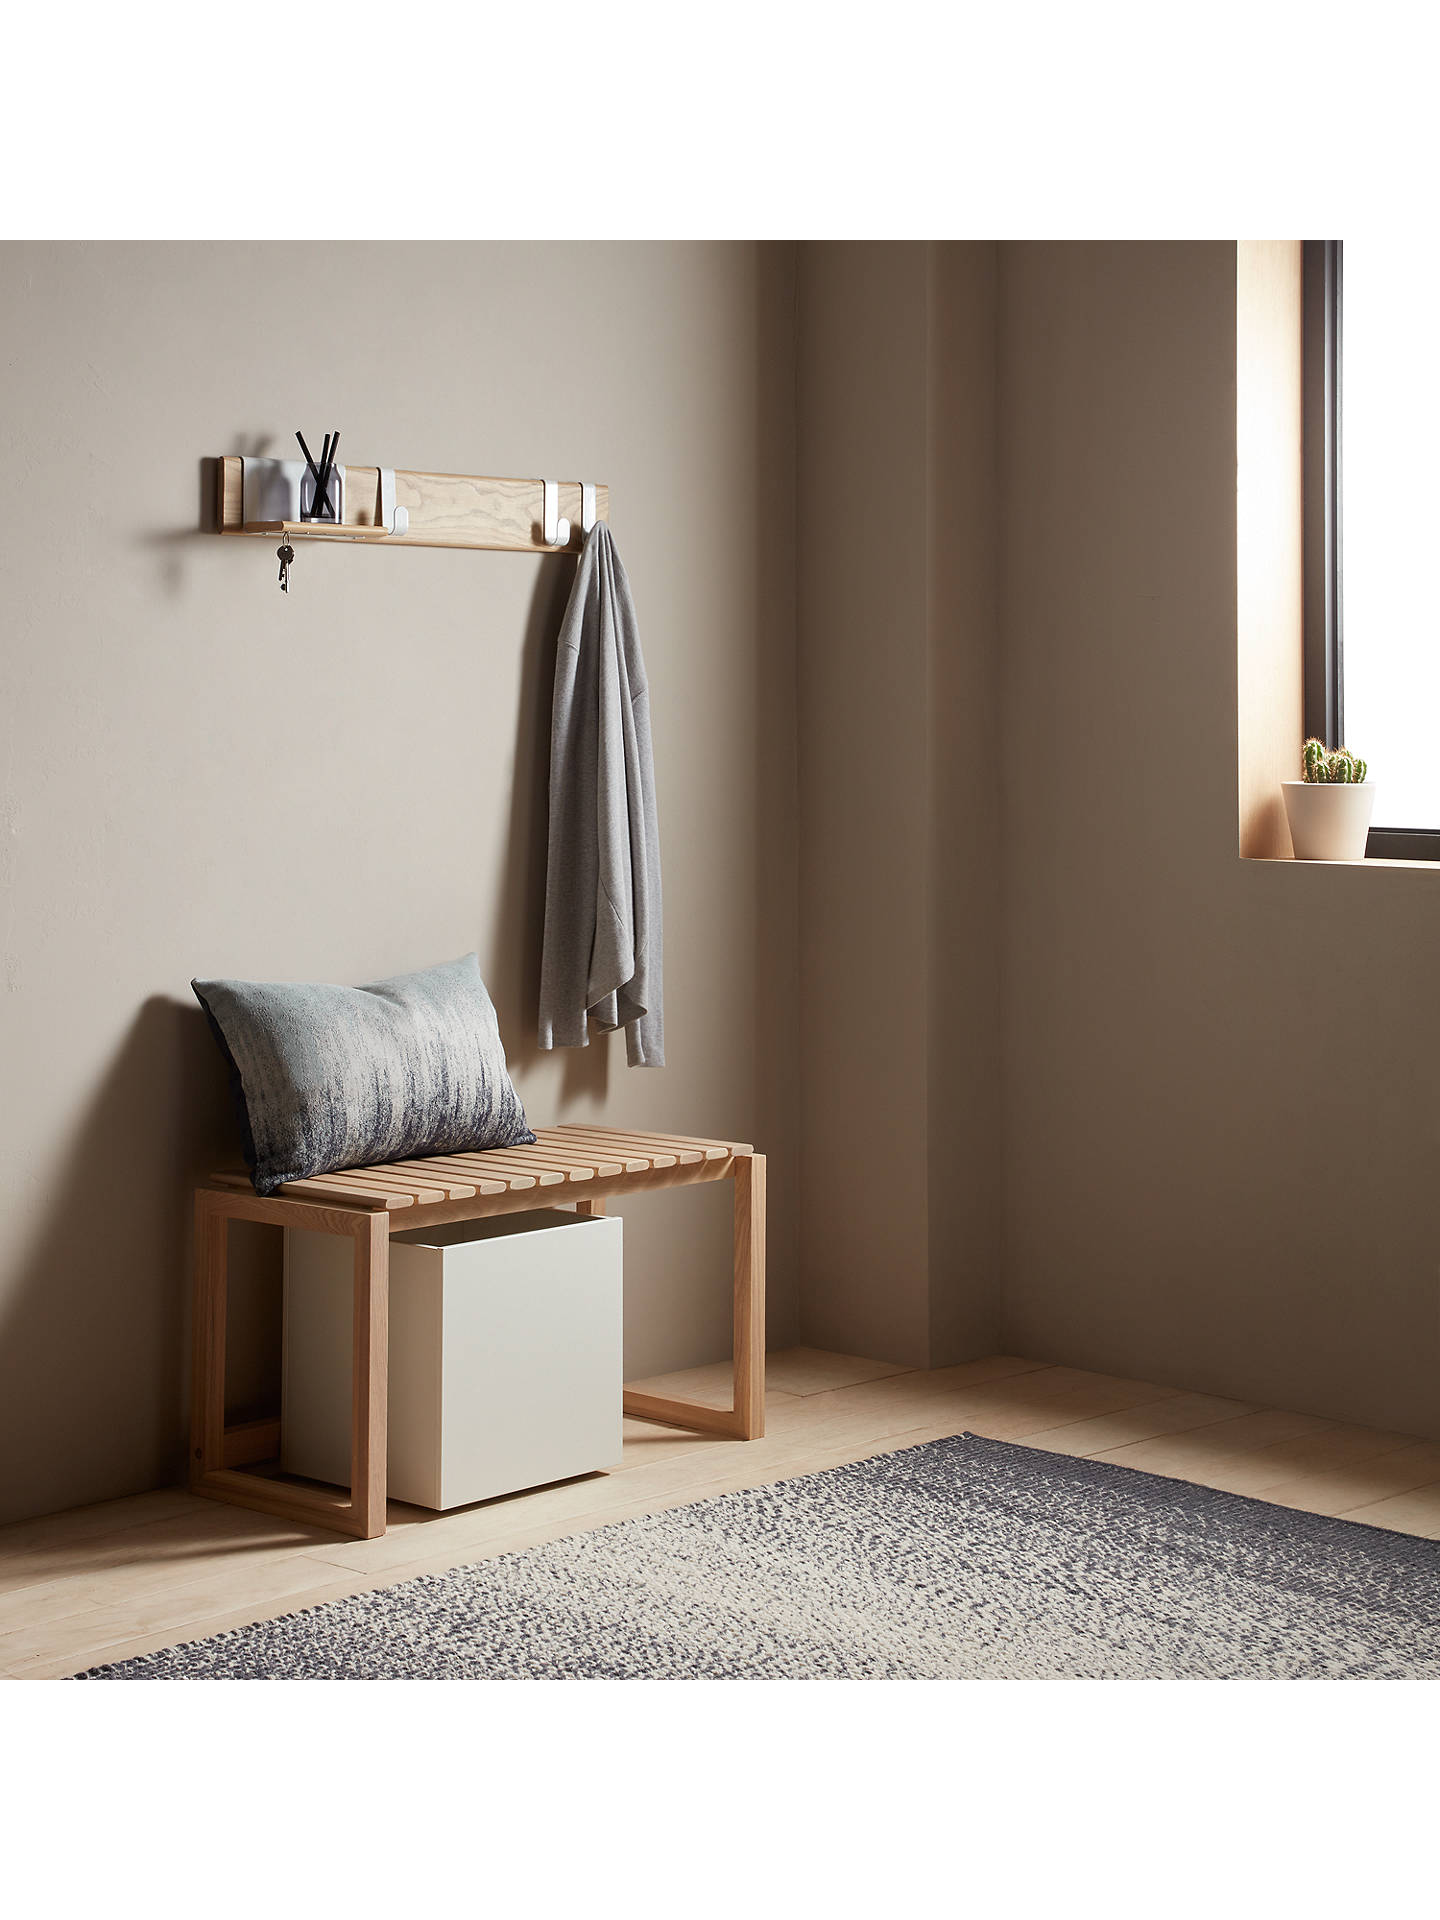 Design project by john lewis storage box on wheels at john lewis partners for John lewis home design service reviews